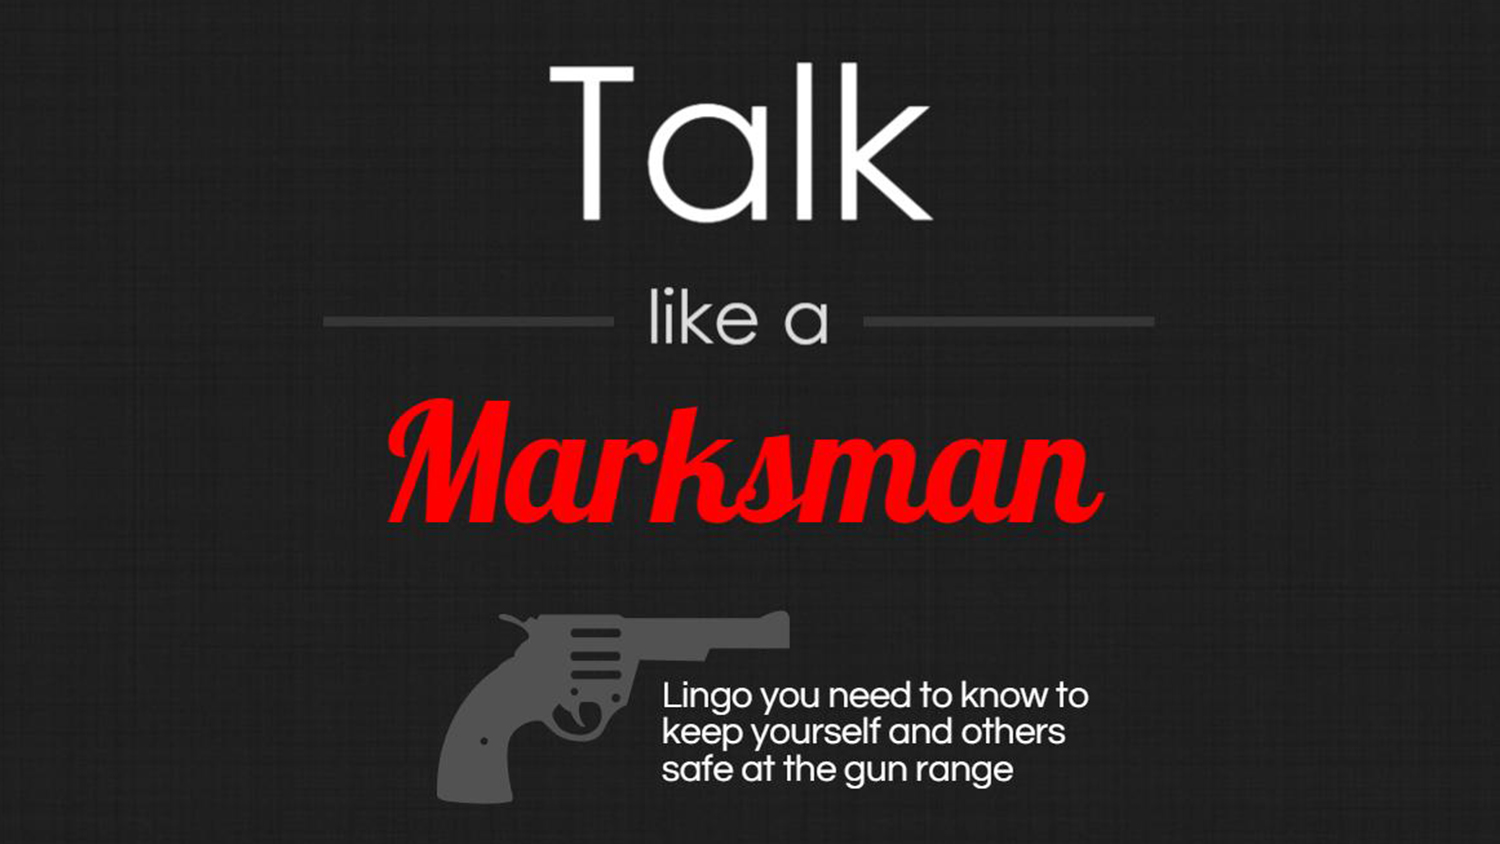 INFOGRAPHIC: Talk like a Marksman